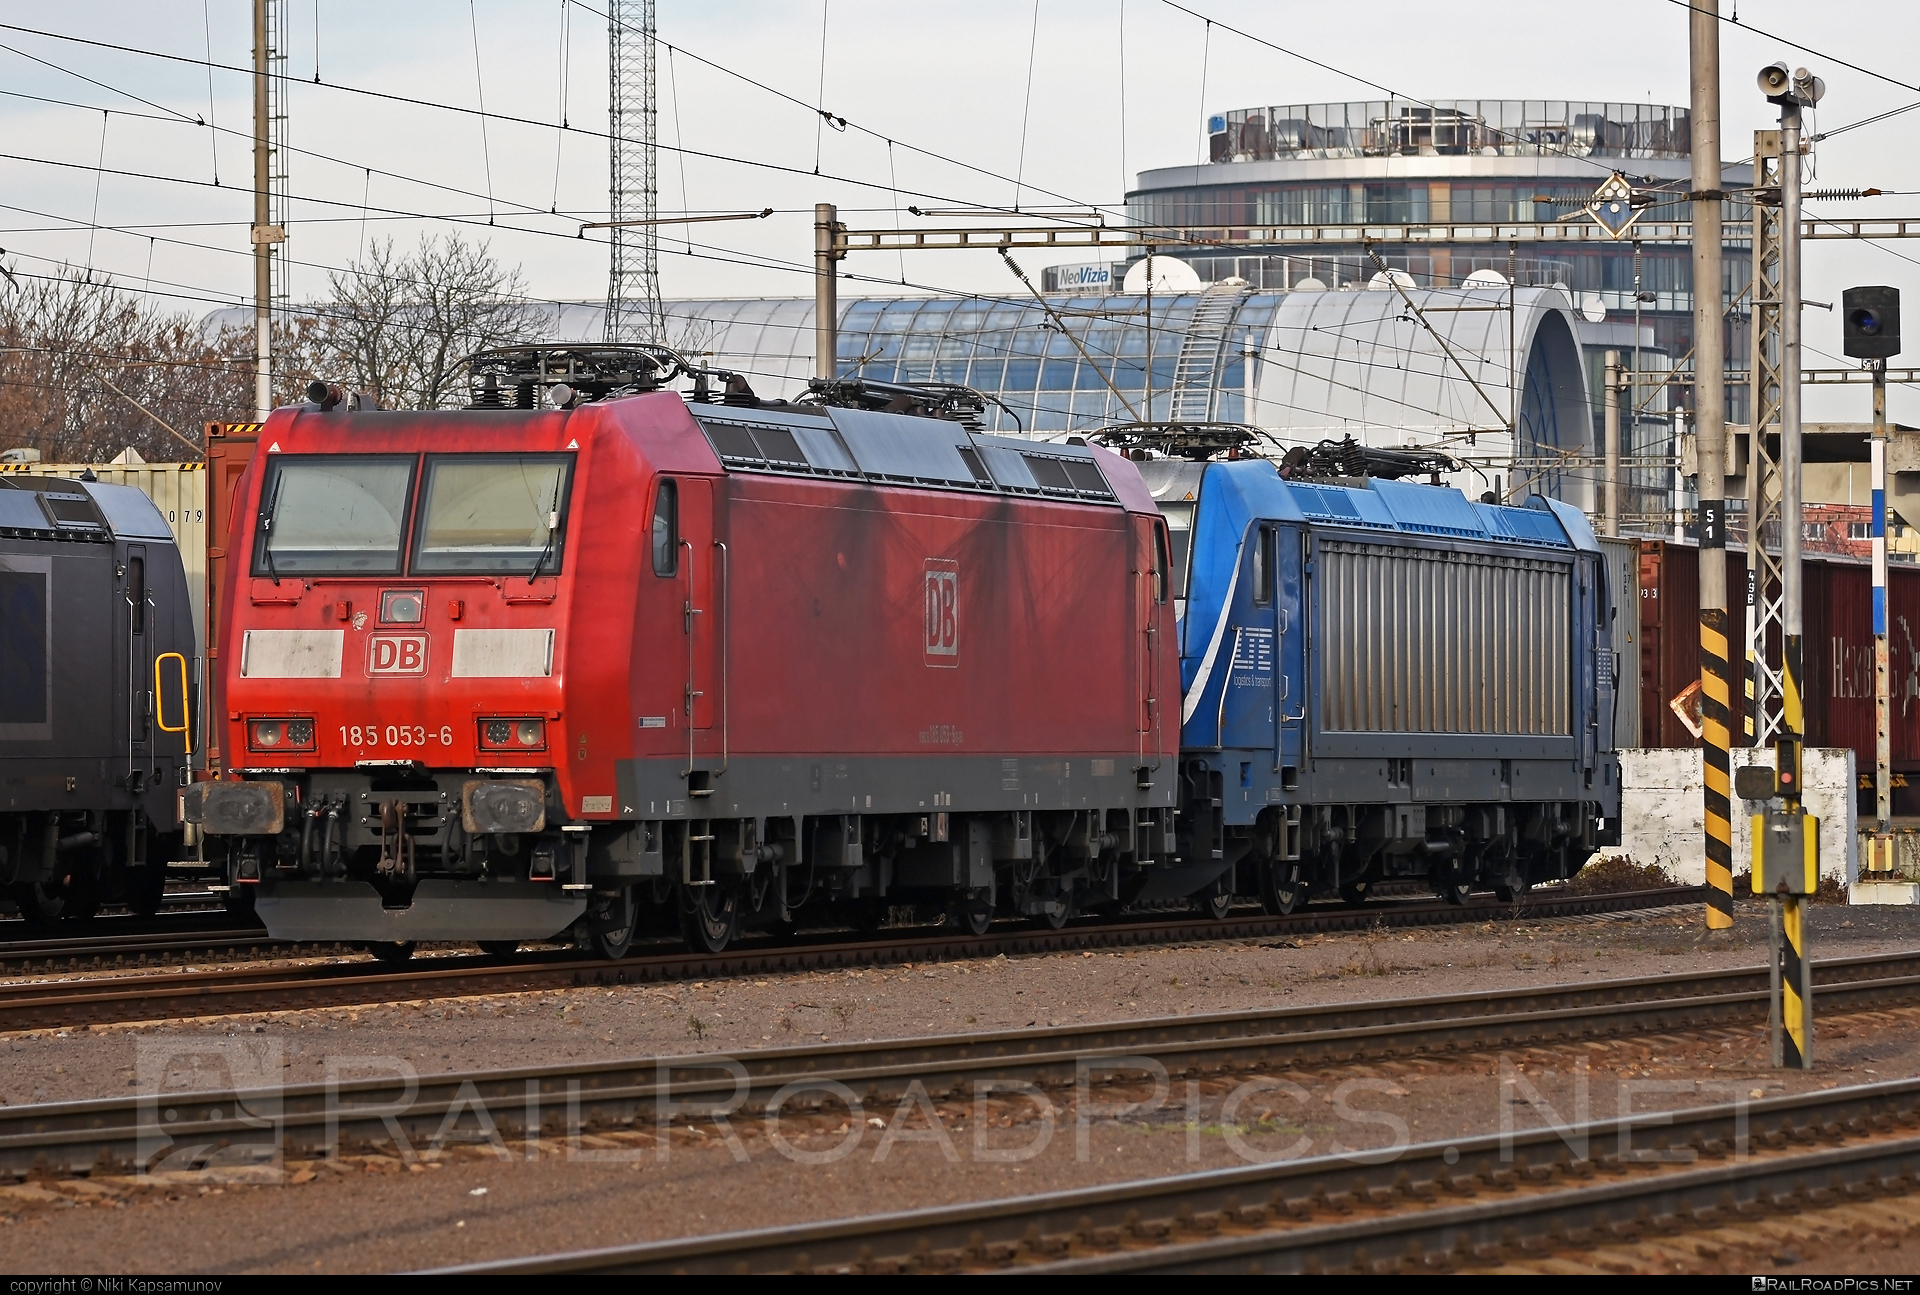 Bombardier TRAXX F140 AC1 - 185 053-6 operated by DB Cargo AG #bombardier #bombardiertraxx #db #dbcargo #dbcargoag #traxx #traxxf140 #traxxf140ac #traxxf140ac1